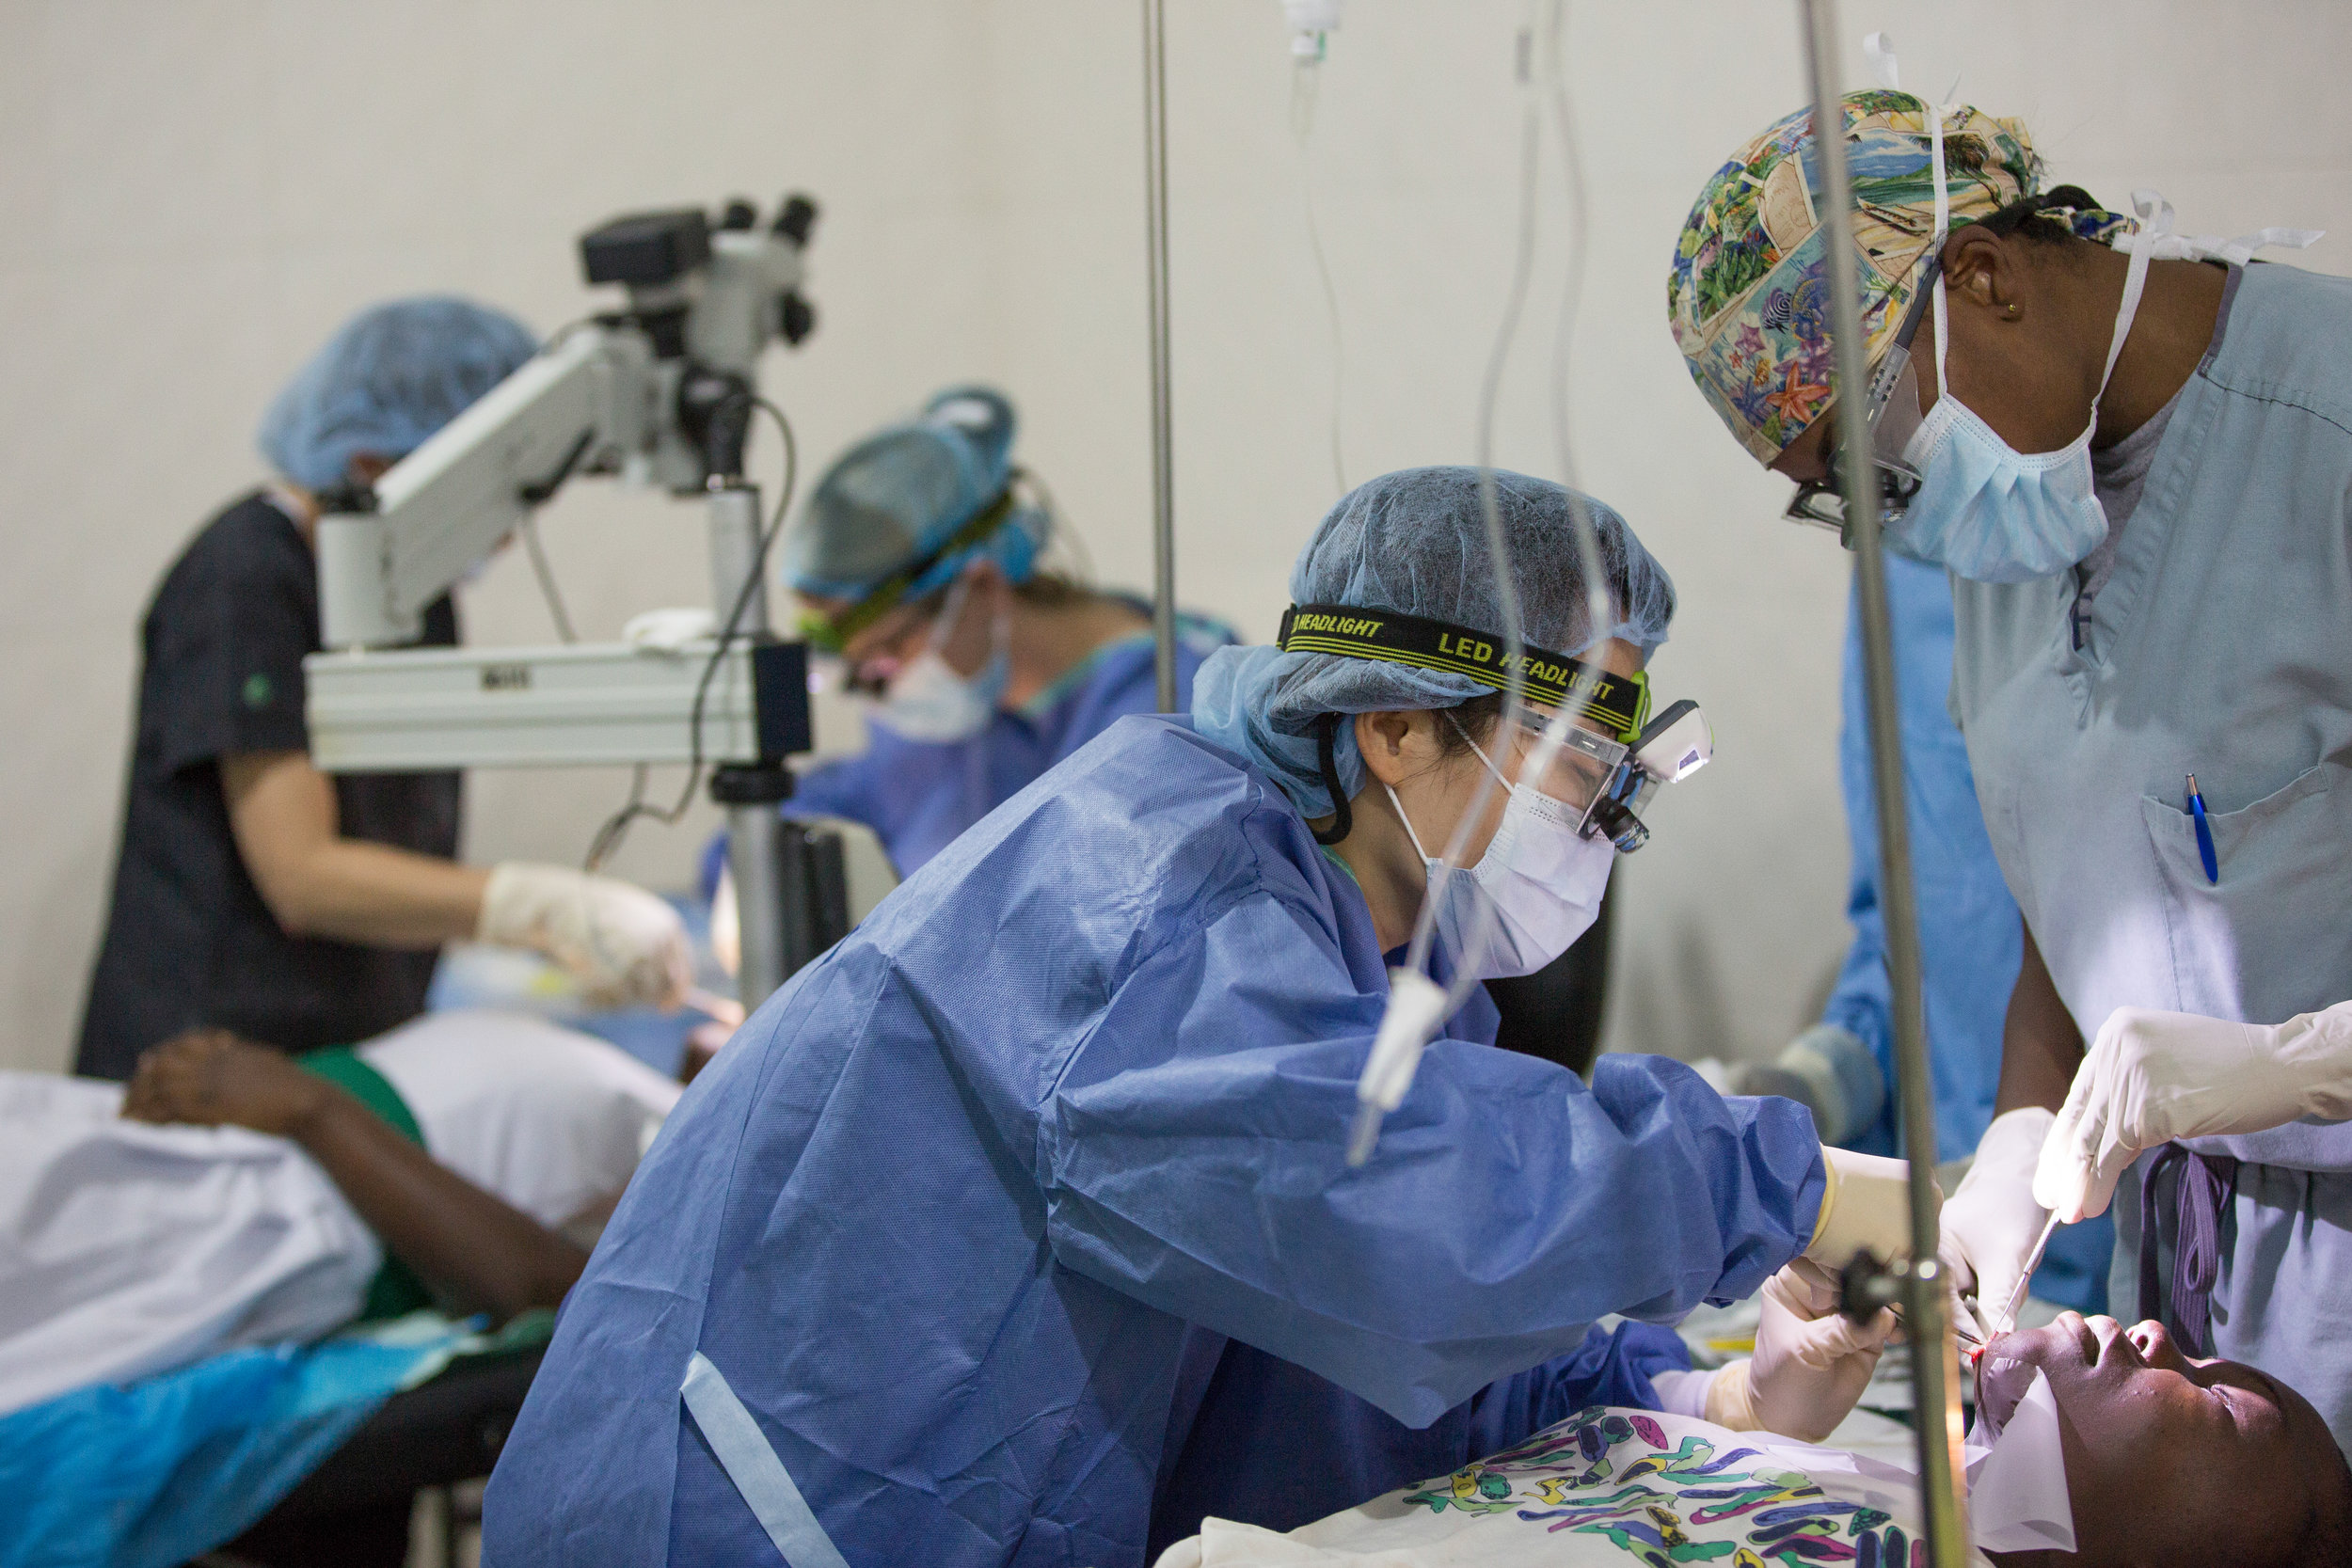 Multiple on-going surgeries given the volume of patients and lack of space.